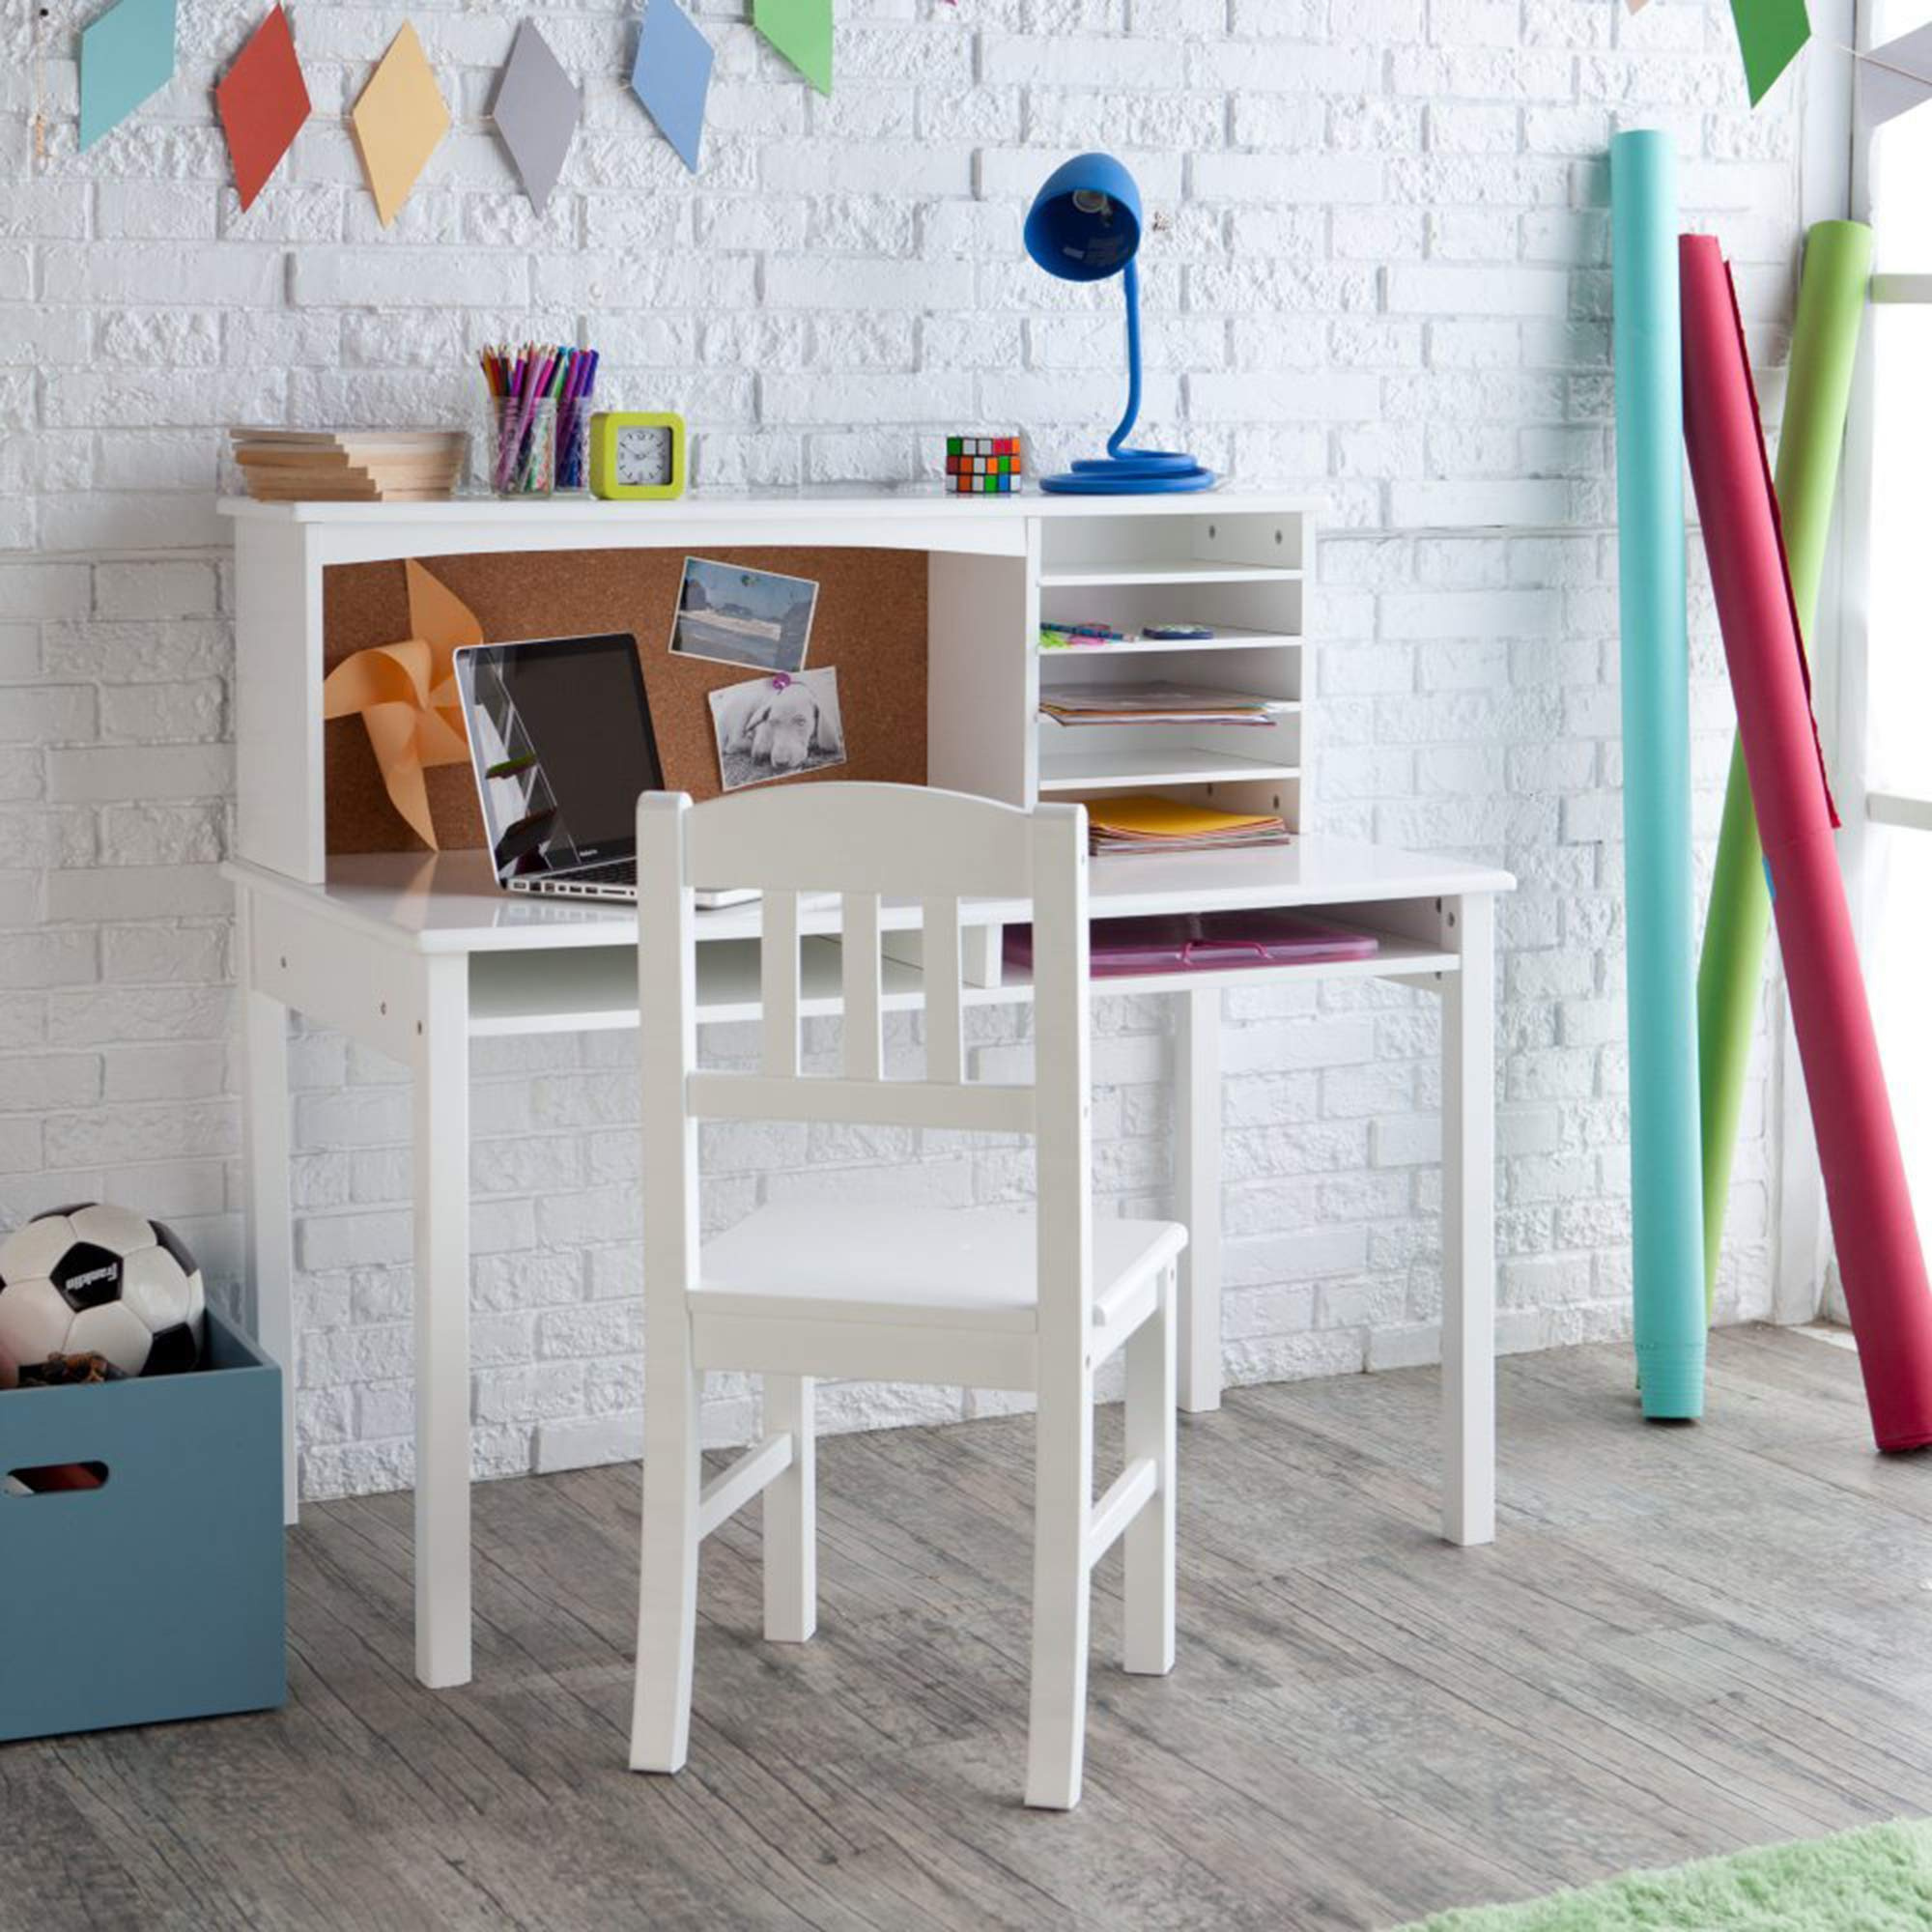 Guidecraft Children's Media Desk and Chair Set White: Student Study Computer Workstation, Wooden Kids Bedroom Furniture by Guidecraft